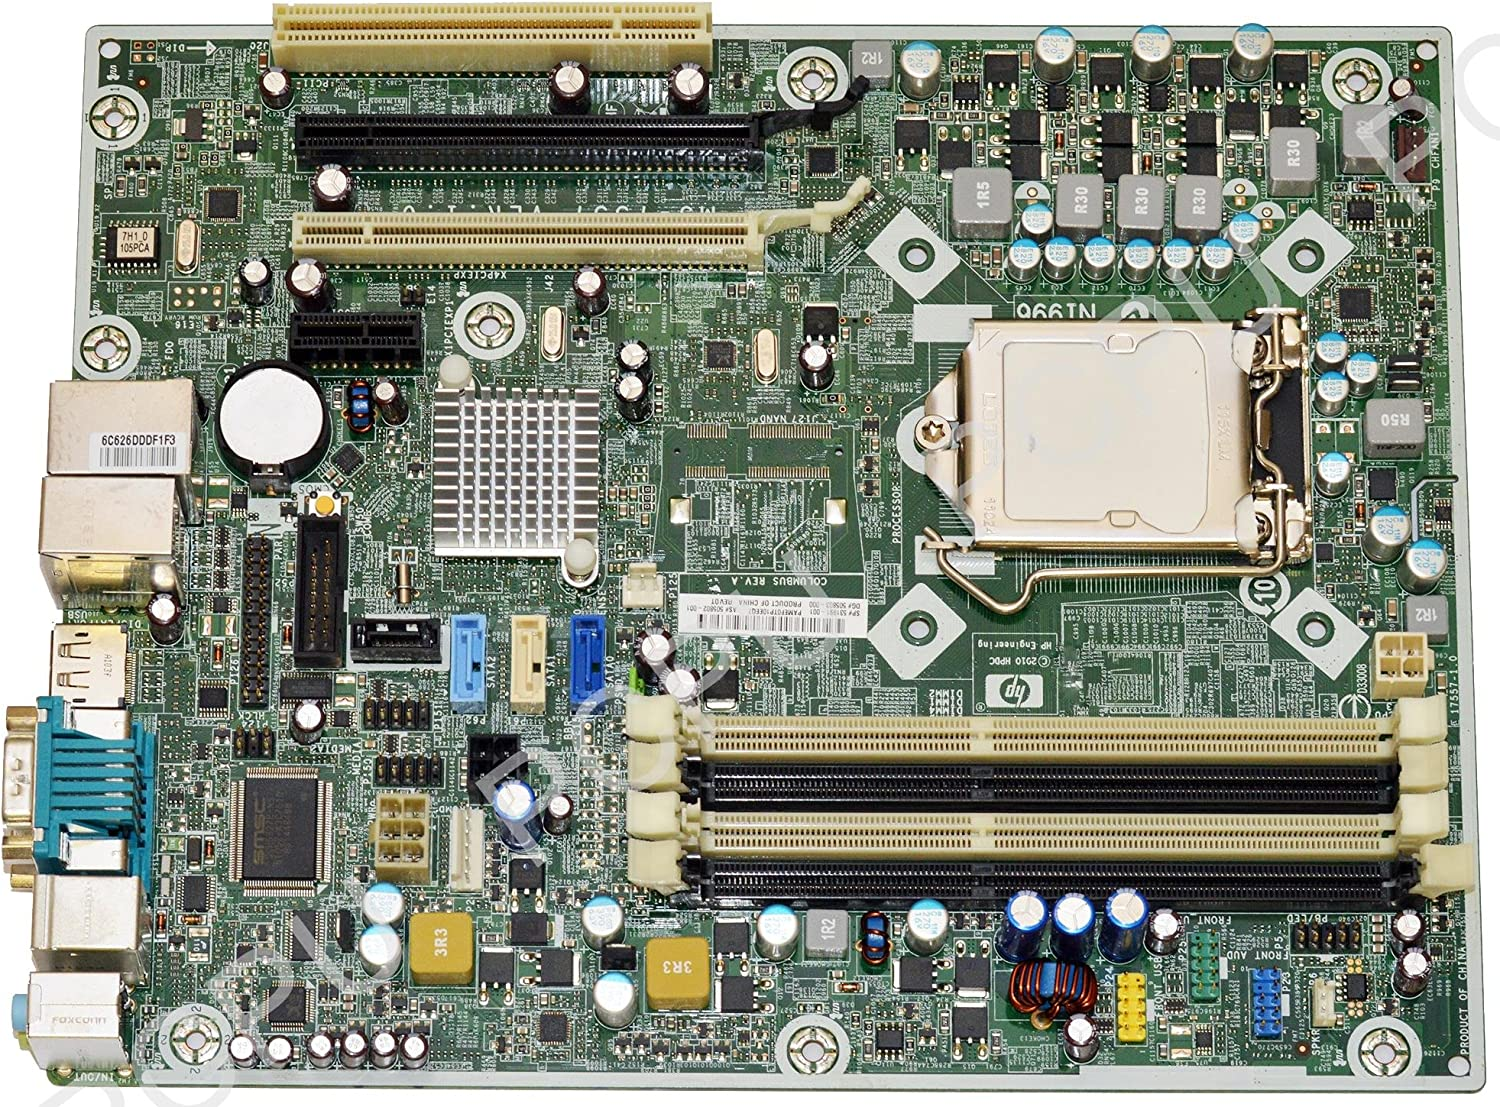 531991-001 HP Compaq 8100 Elite SFF Intel Desktop Motherboard s775